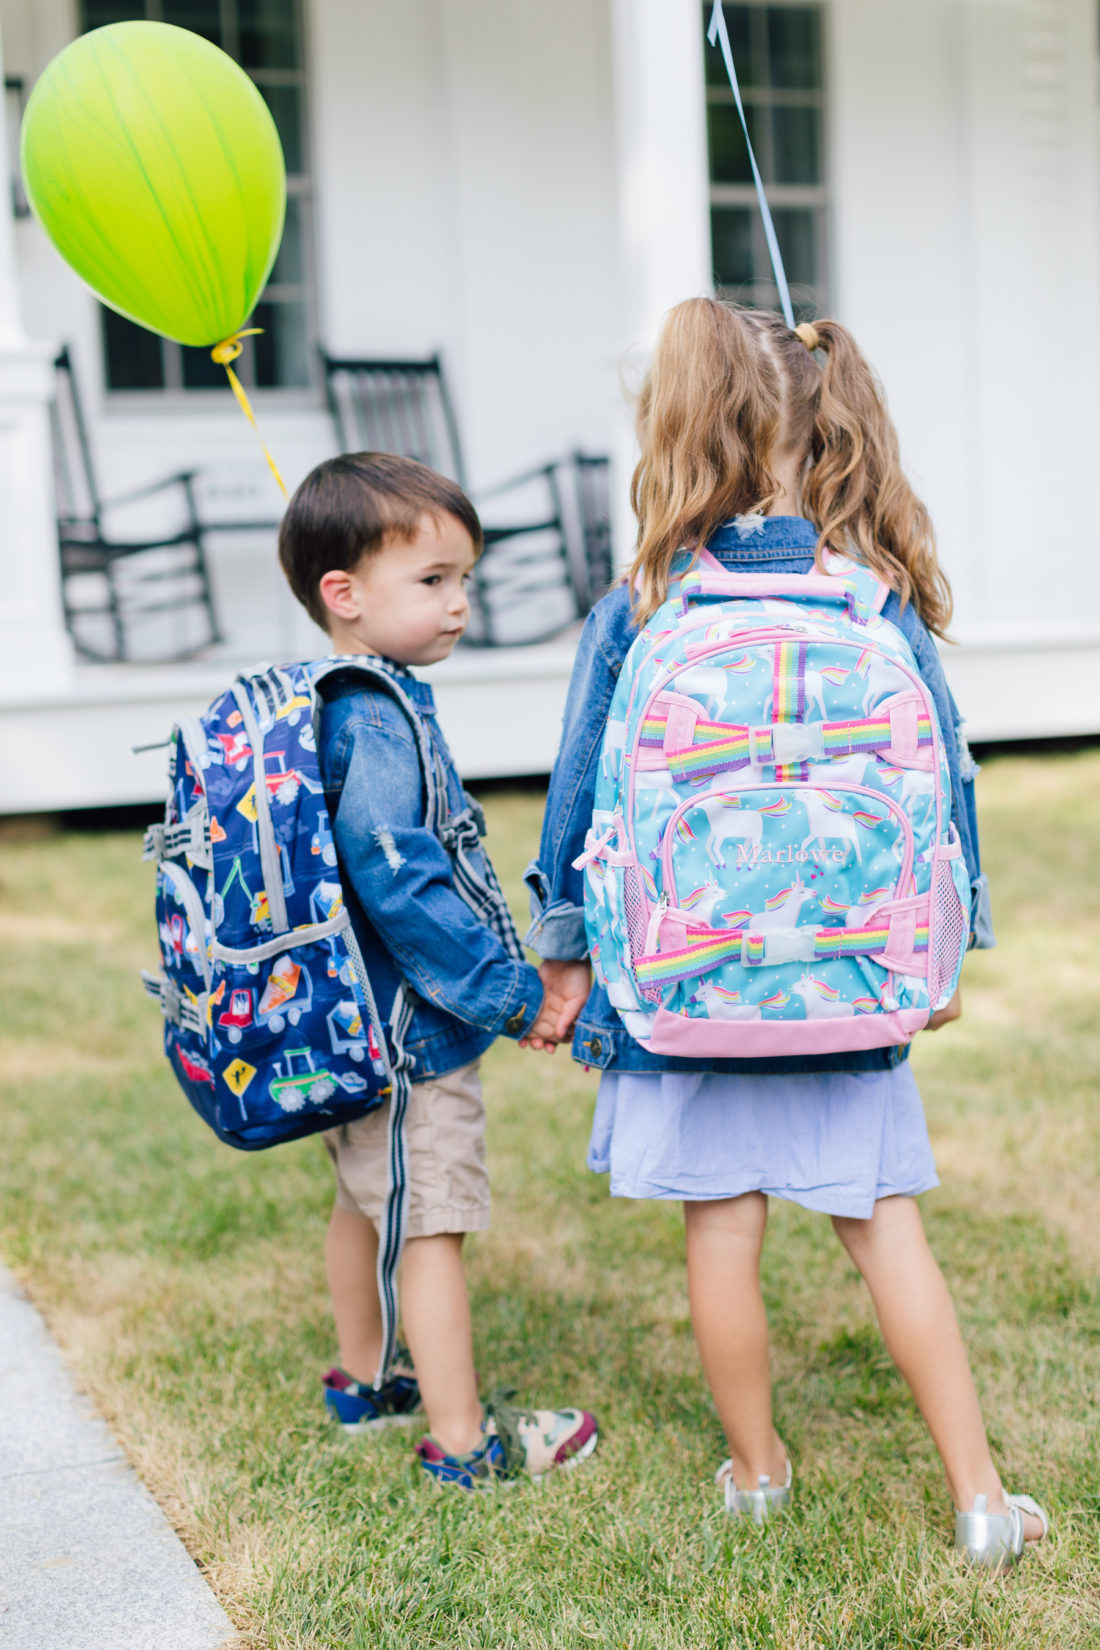 Marlowe and Major Martino holding hands in their back to school gear